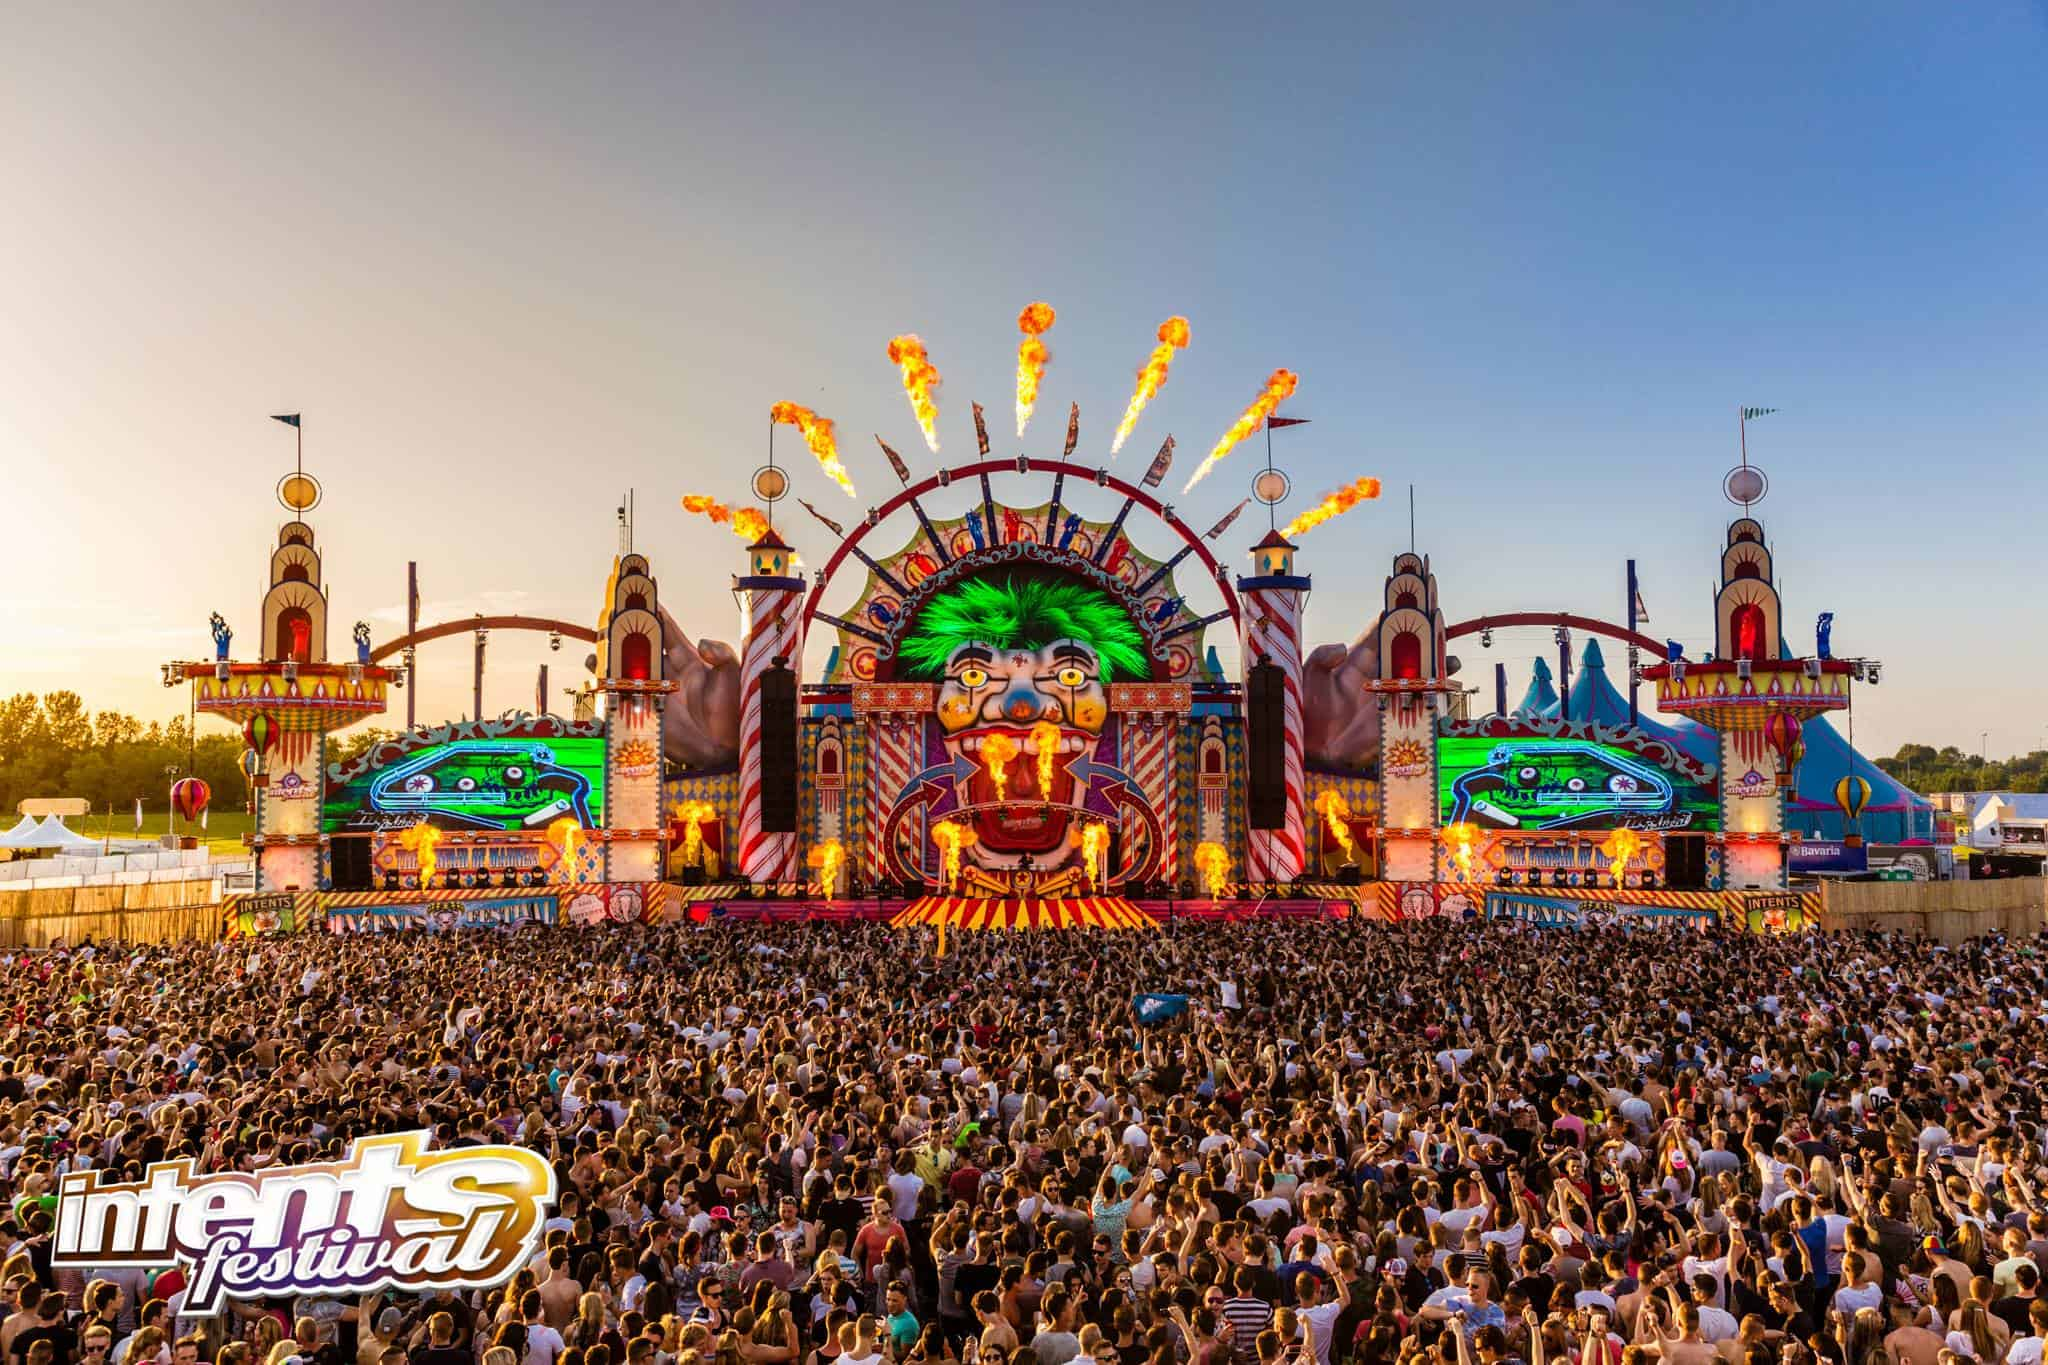 Intents mainstage 2015